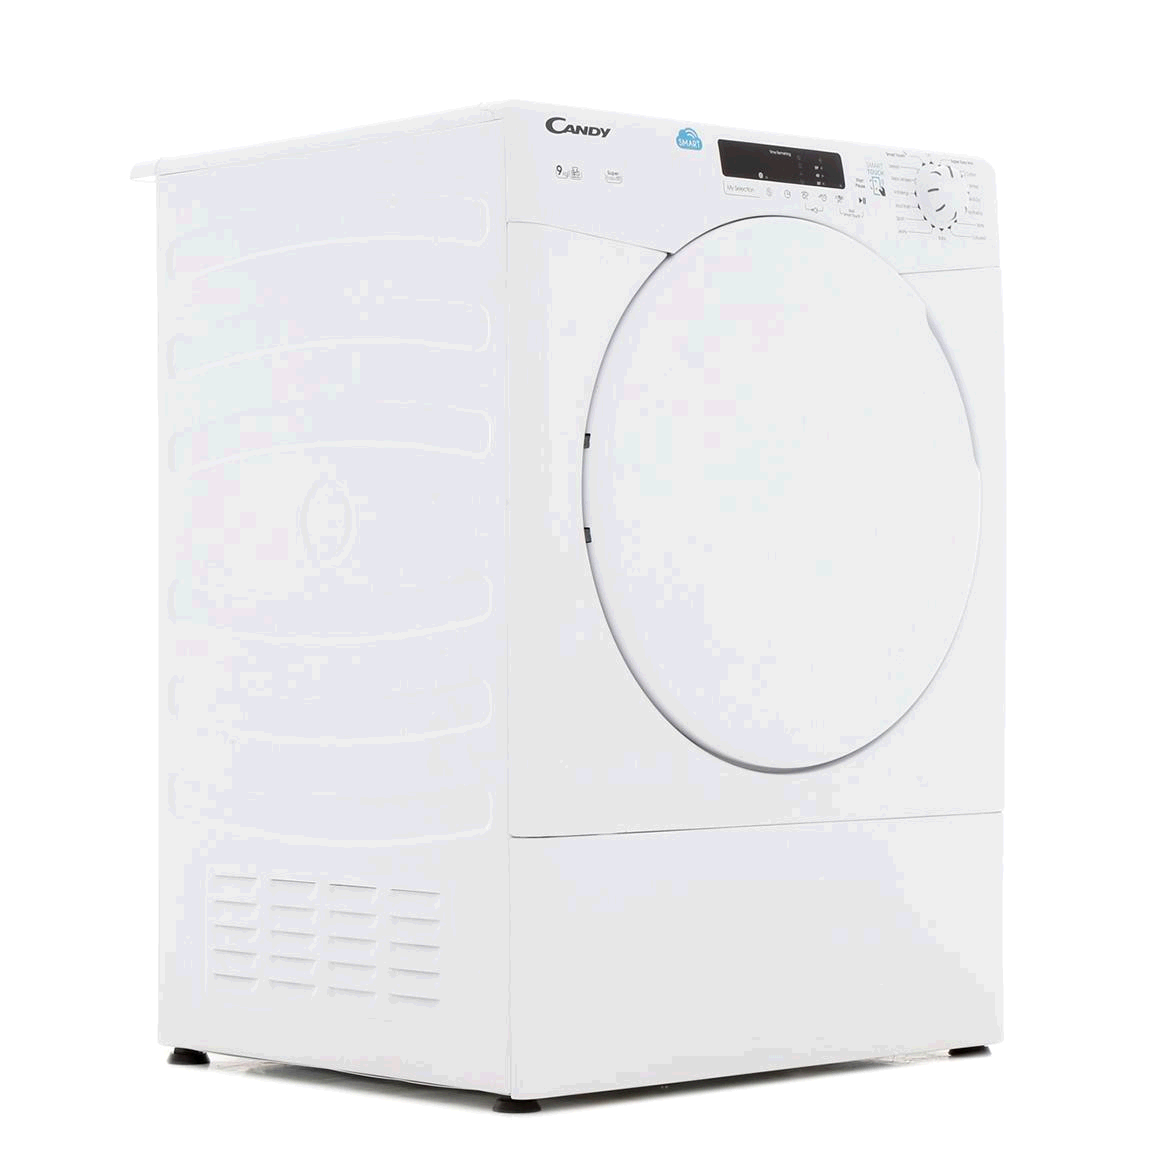 Hoover Candy Tumble Dryer Vented Sensor Dry9KG  H85 W60 D60 White with White Door